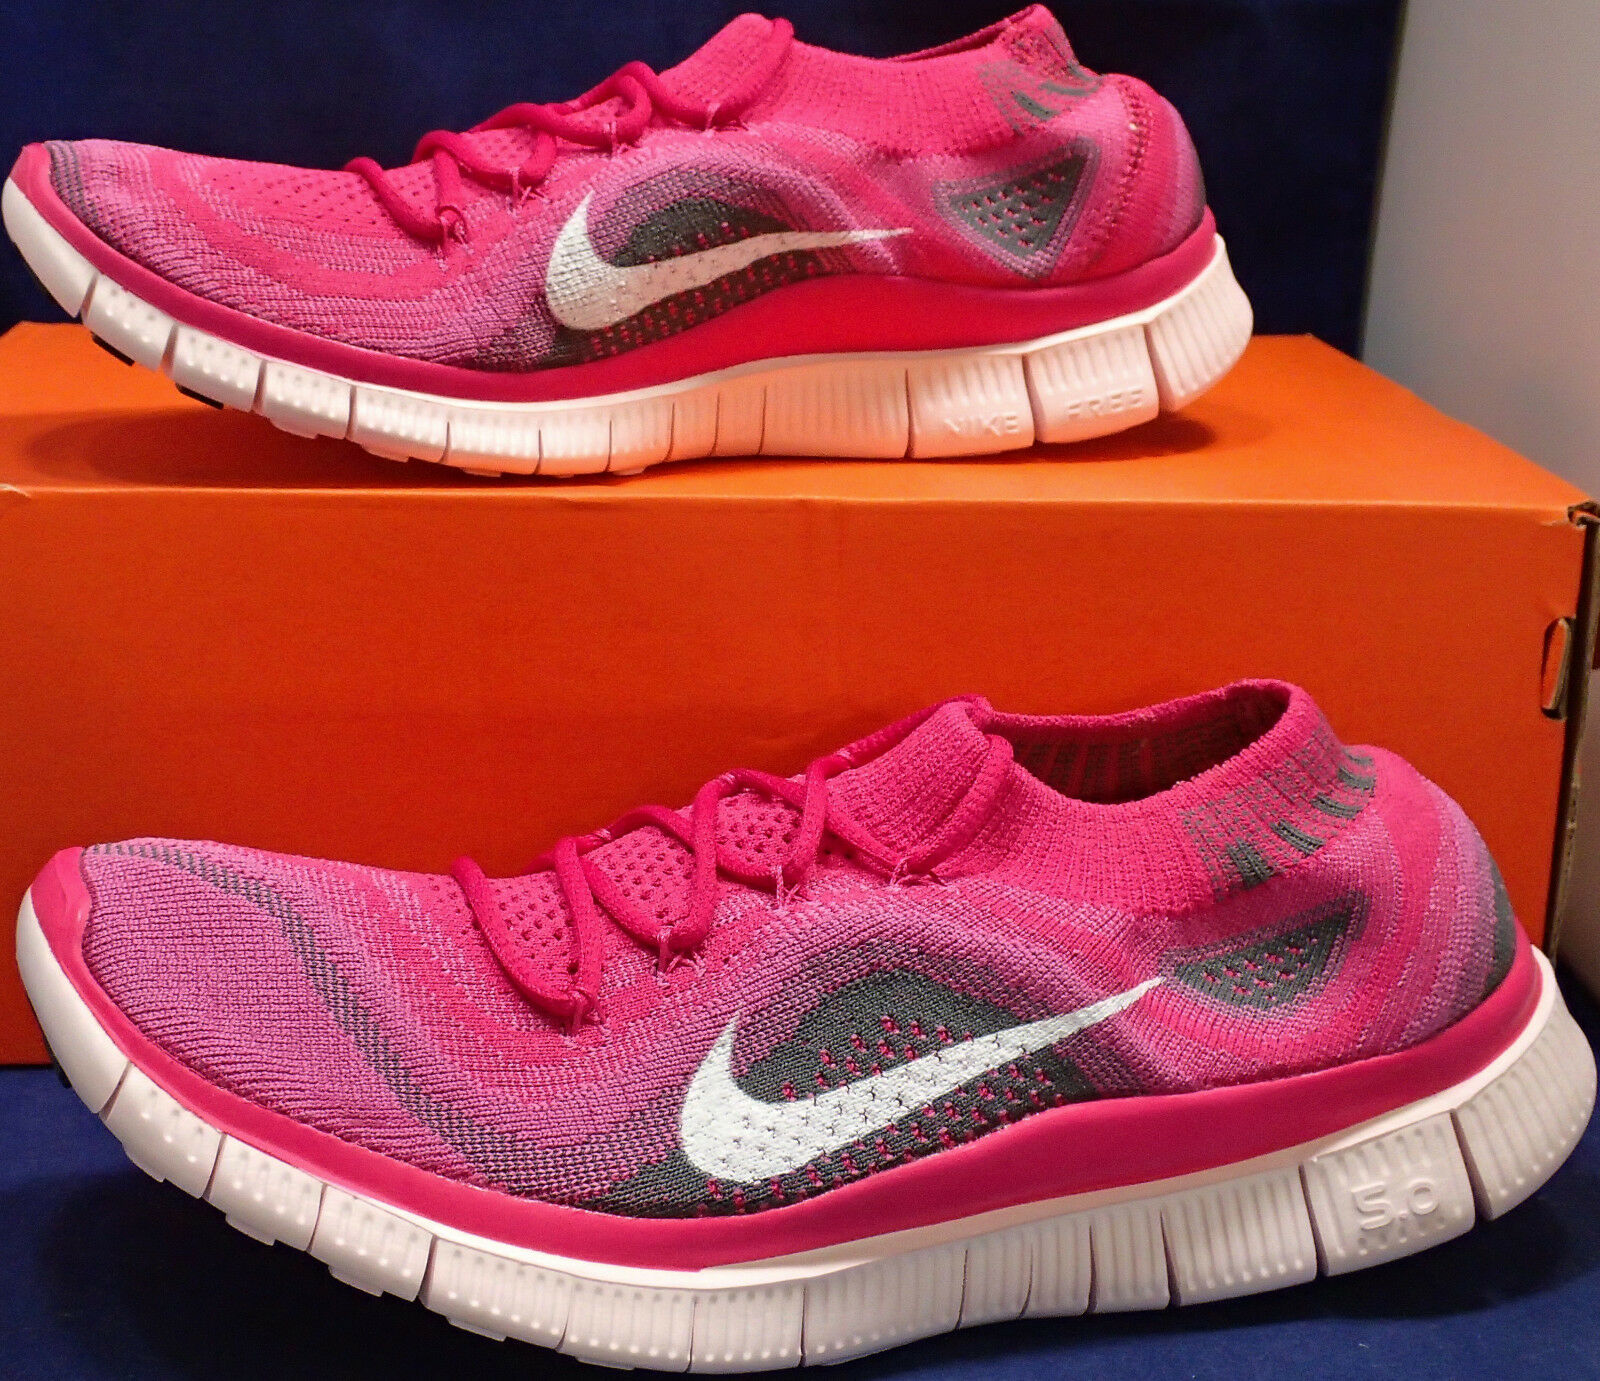 2013 Womens Nike Free Flyknit+ OG Fireberry White Pink Run SZ 8.5 ( 615806-610 )